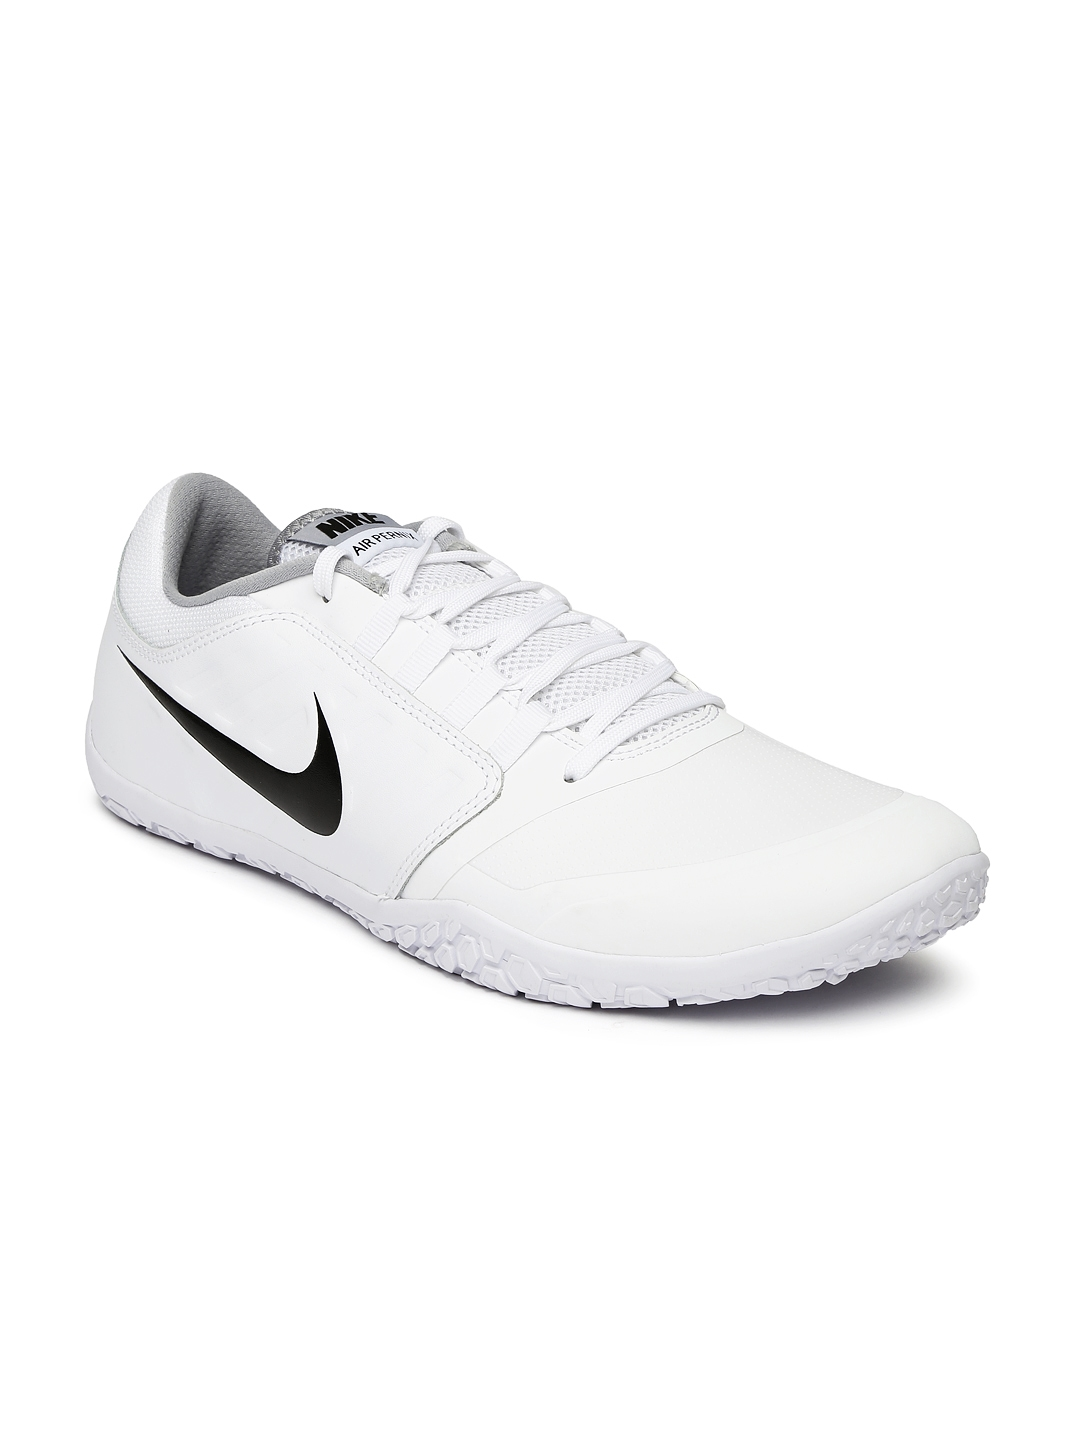 Larva del moscardón foro cosa  Buy Nike Men White Air Pernix Leather Training Shoes - Sports Shoes for Men  1267306 | Myntra